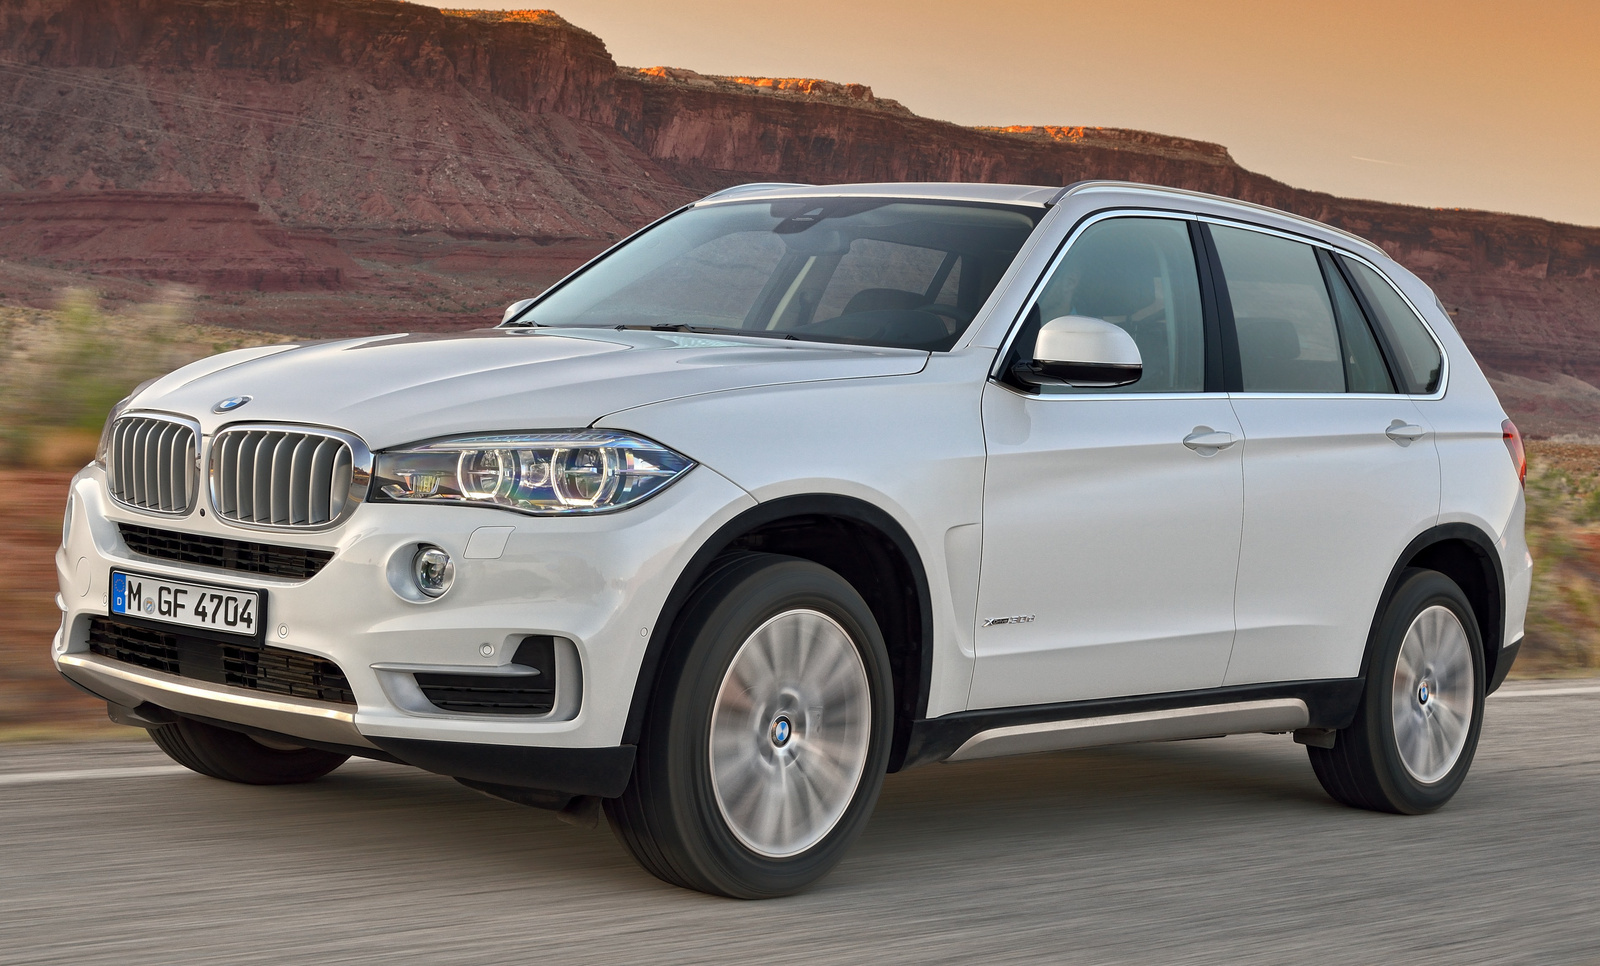 Bmw x3 2014 review